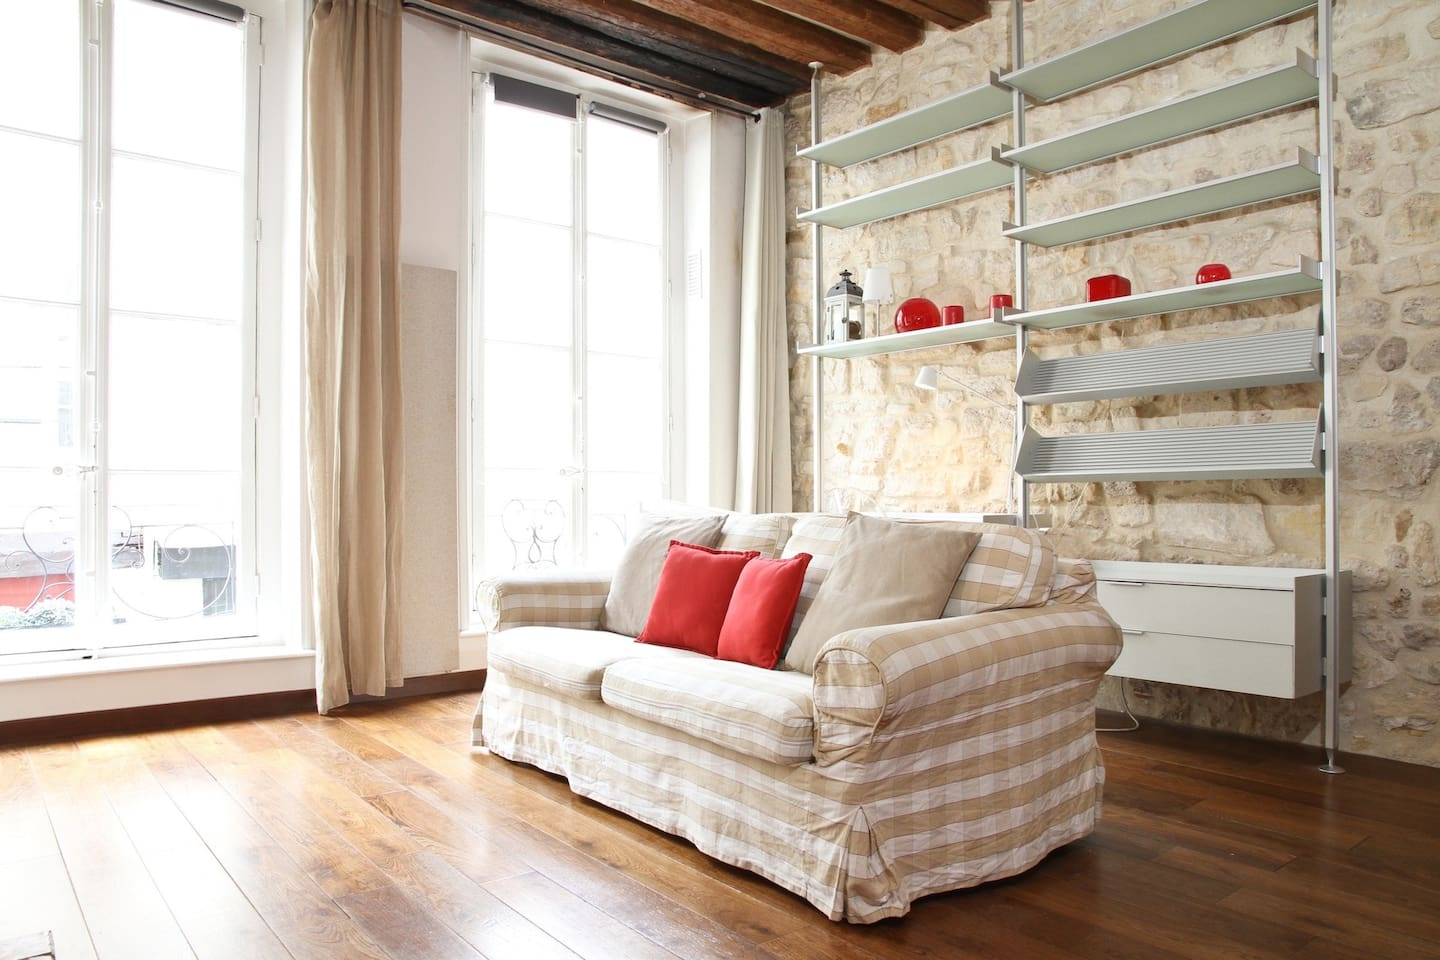 It is a cosy but airy living room, perfect for relaxing after a long day of city sightseeing